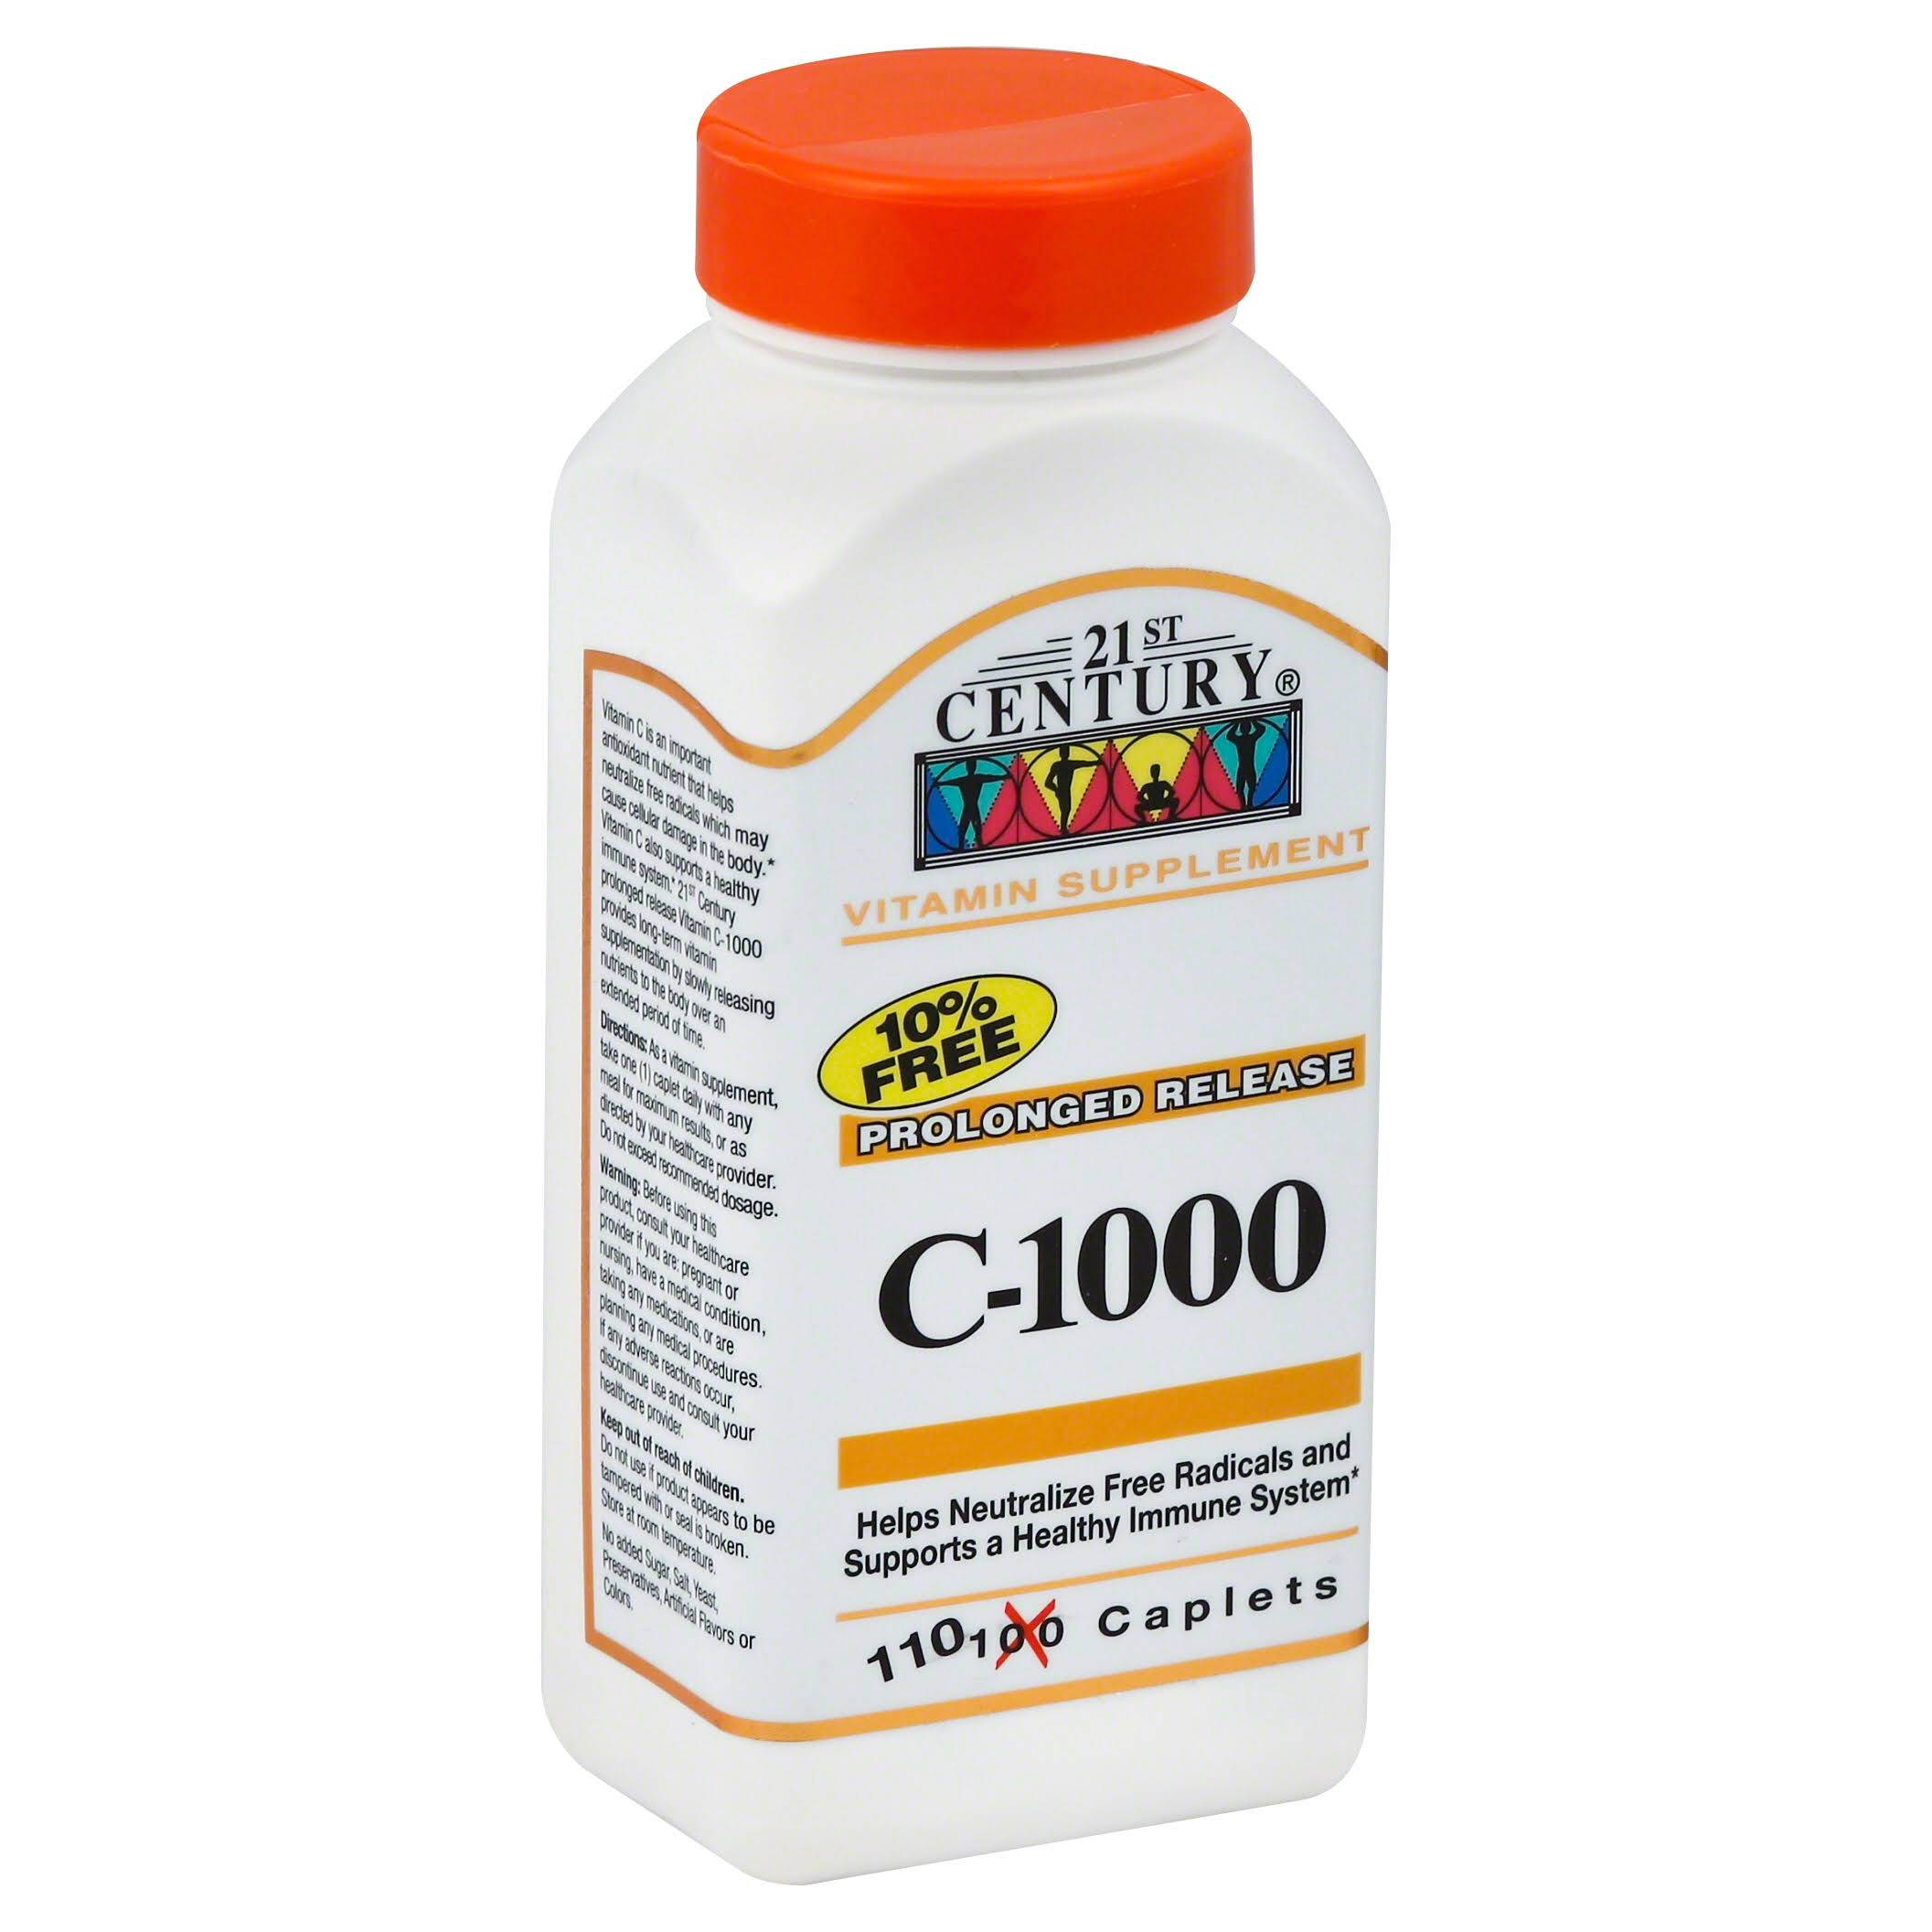 21st Century Health Care C-1000 Prolonged Release Supplement - 110 Caplets